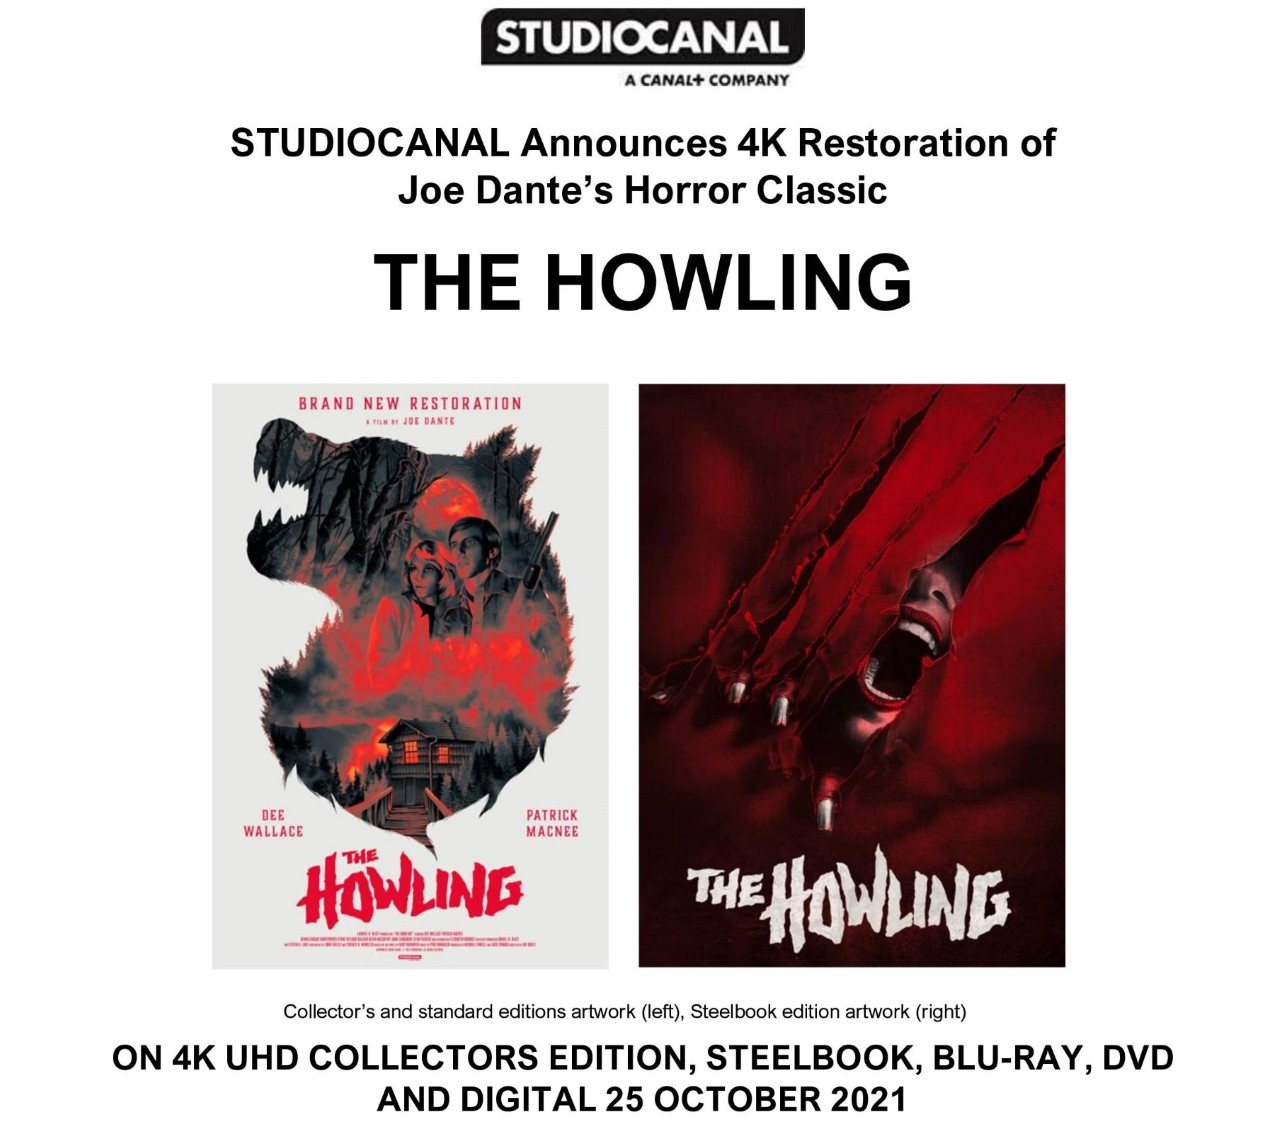 The Howling Cover